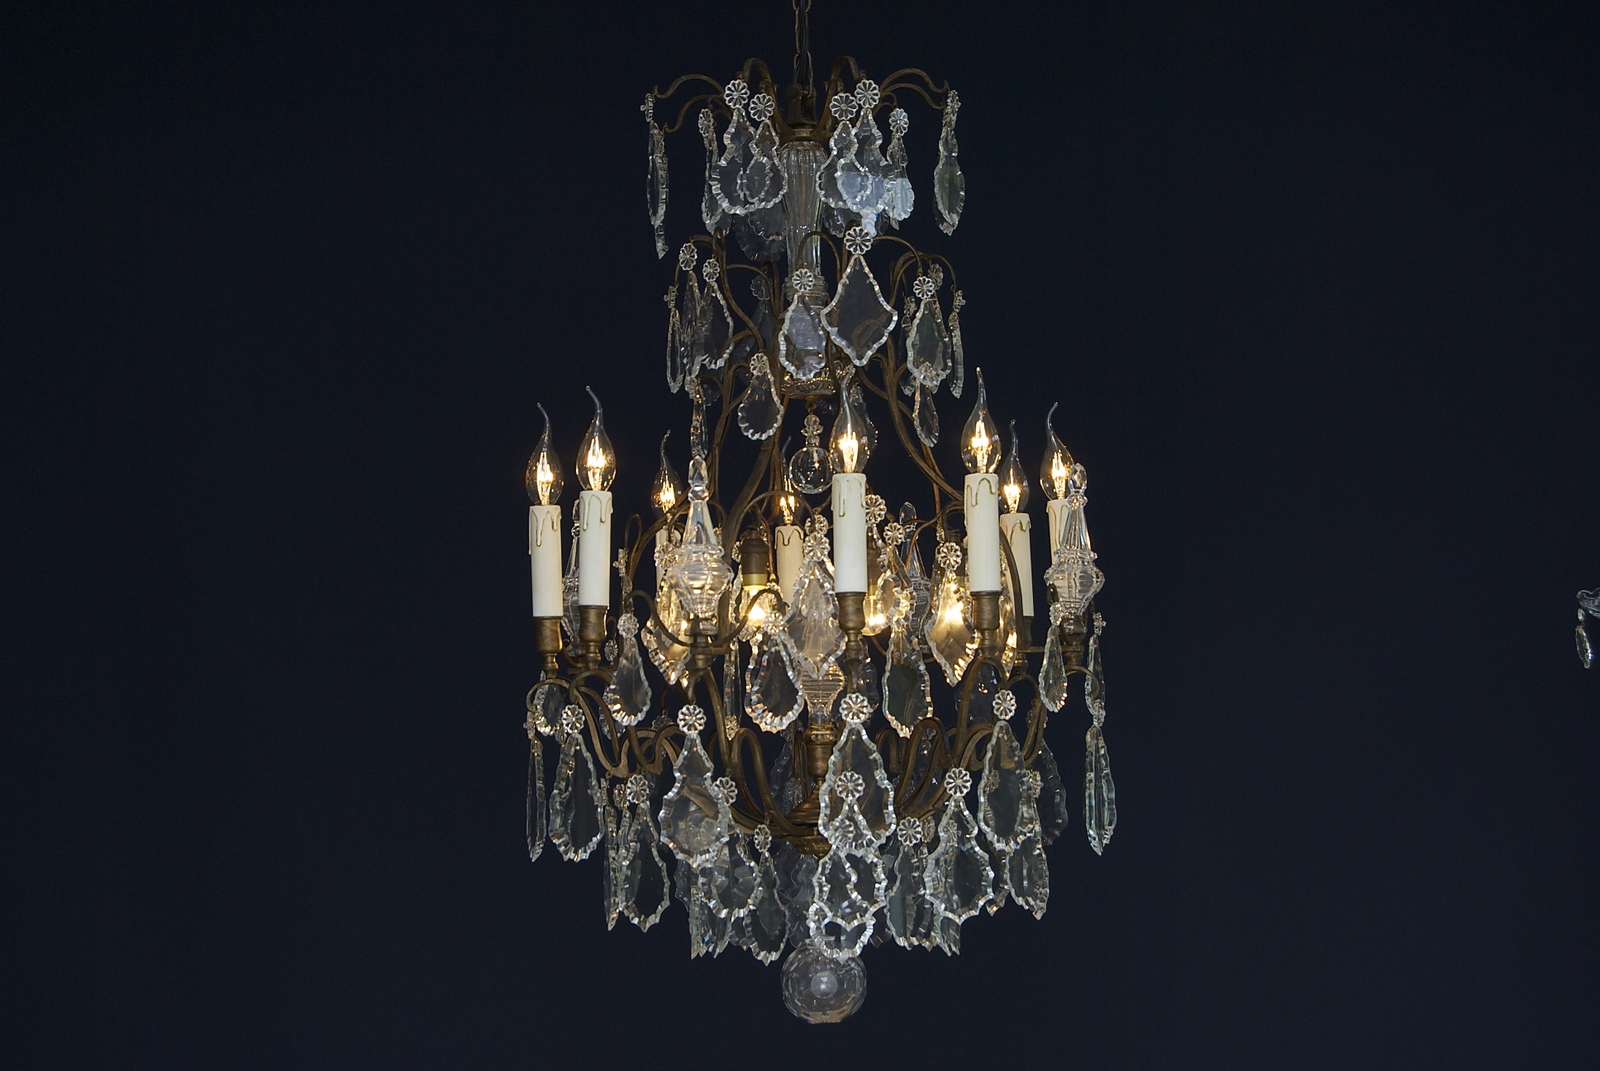 Louis XV style French chandelier